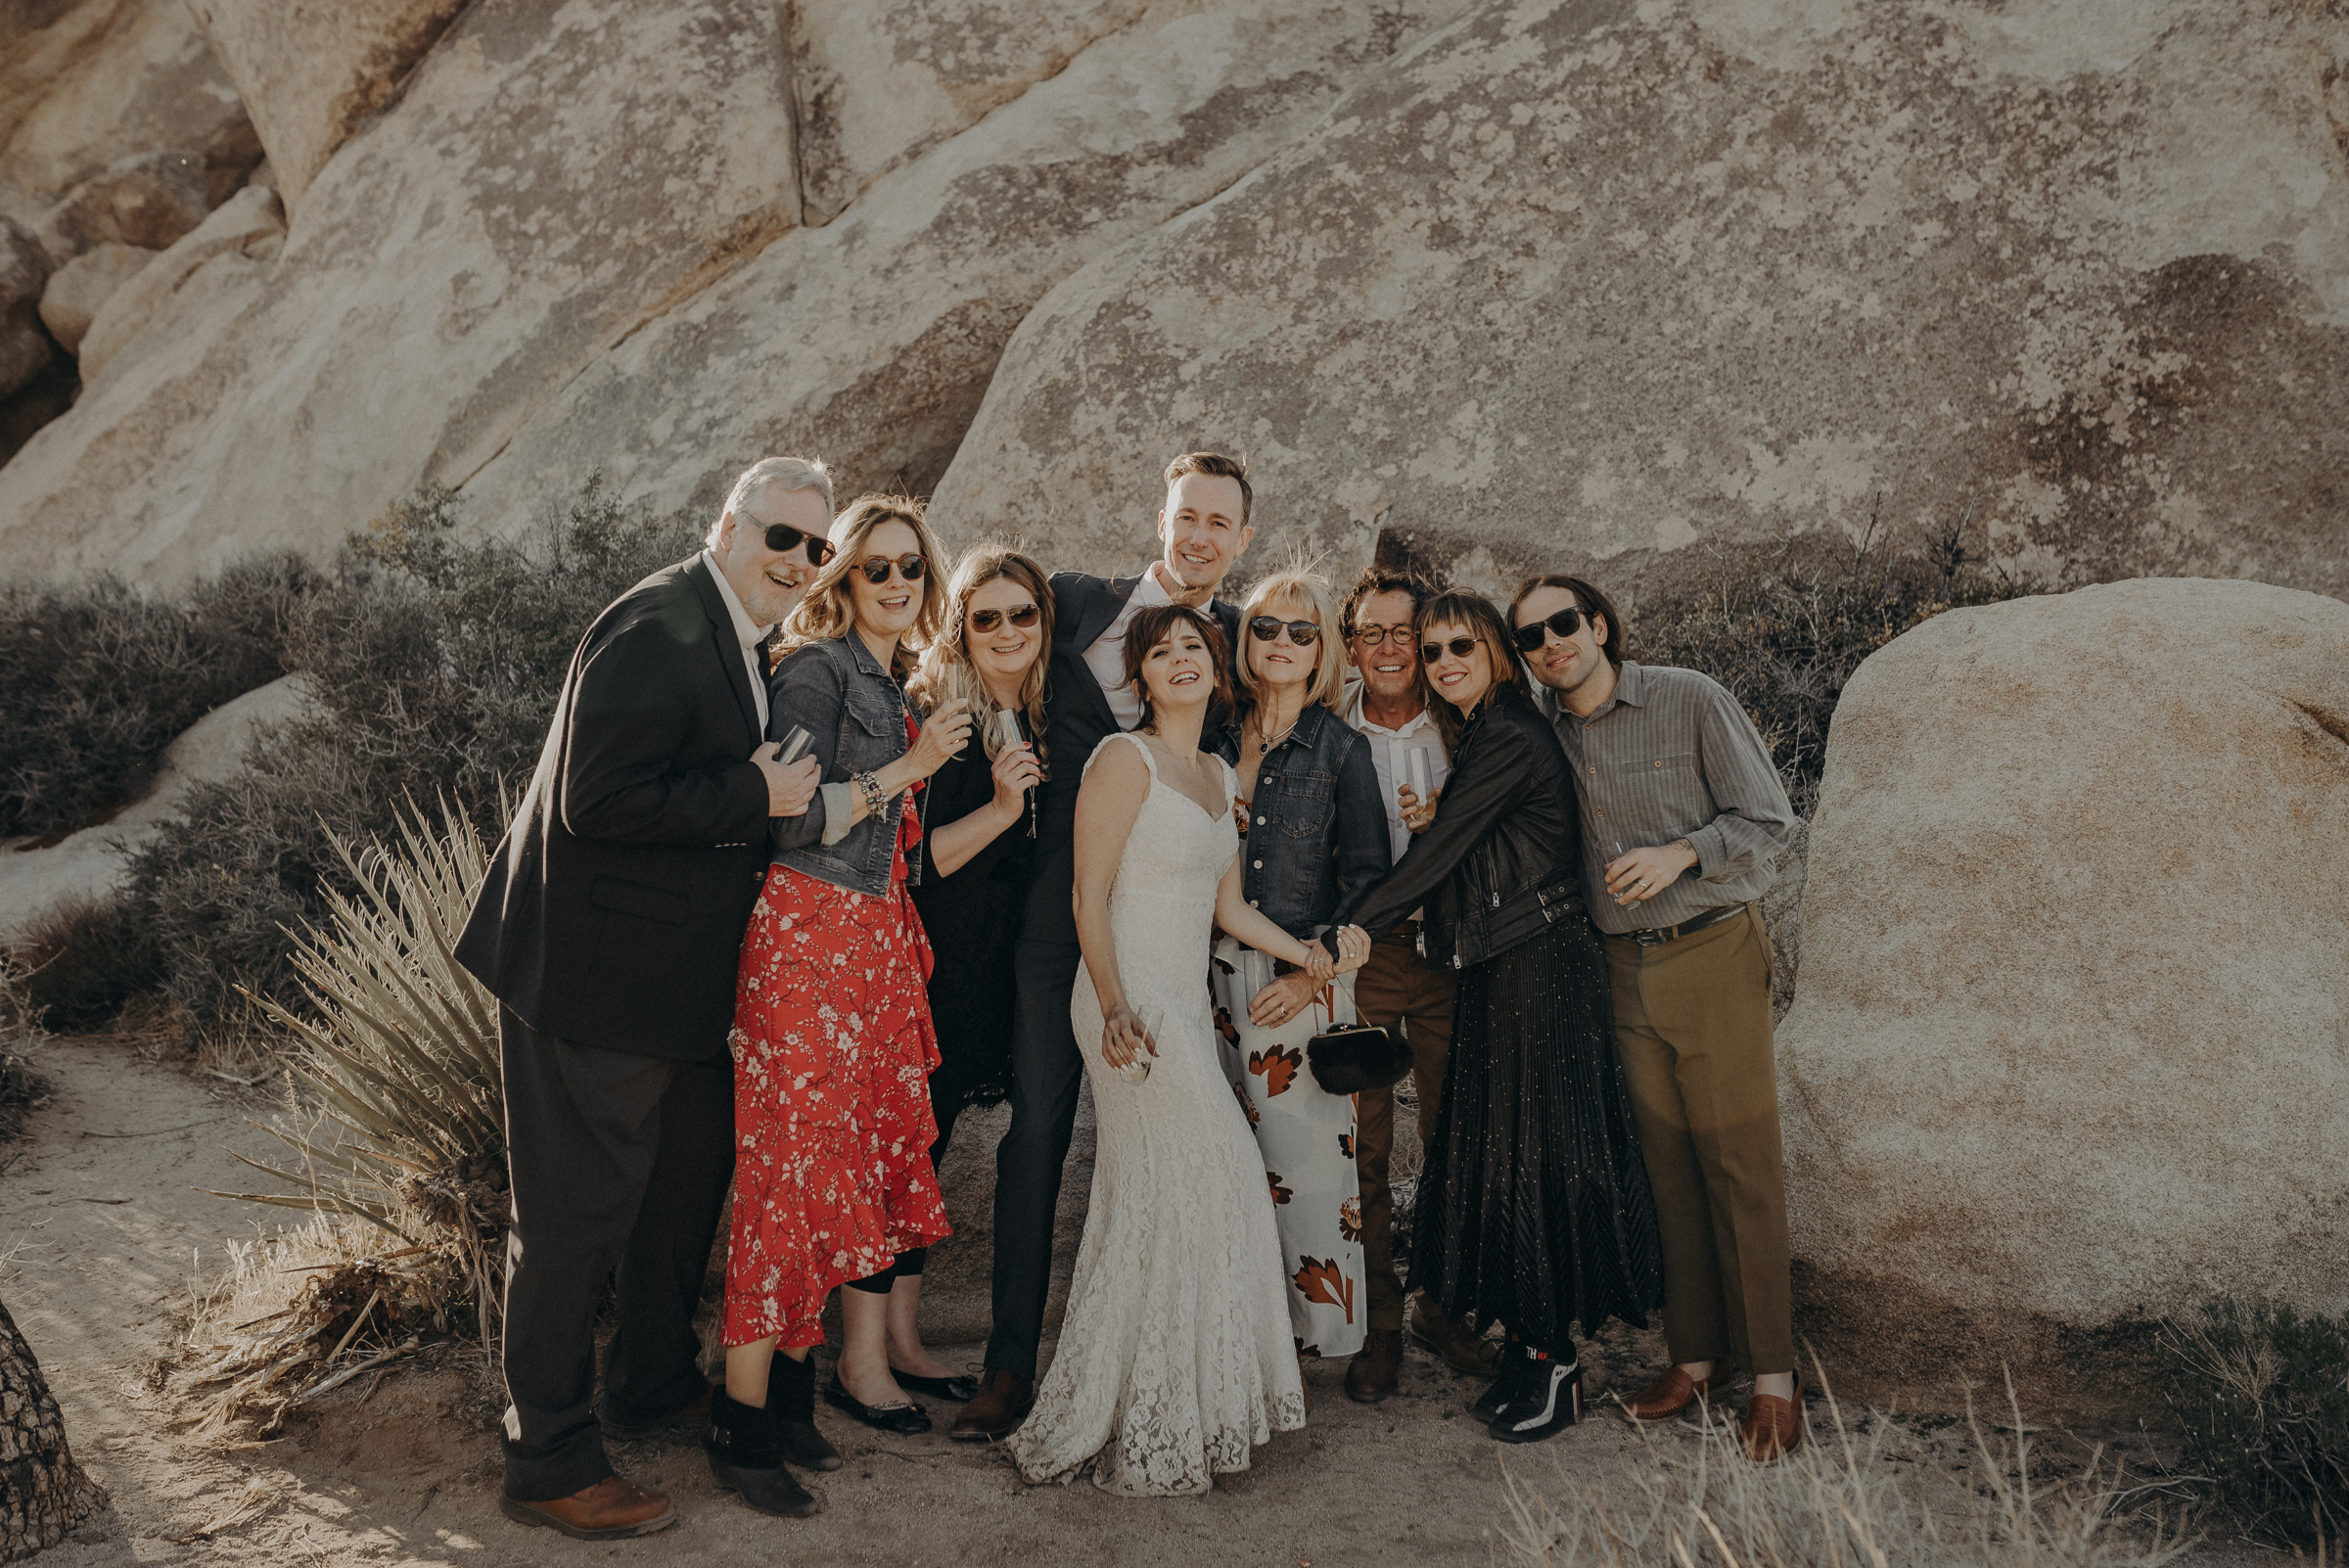 Joshua Tree Elopement - Los Angeles Wedding Photographers - IsaiahAndTaylor.com-050.jpg